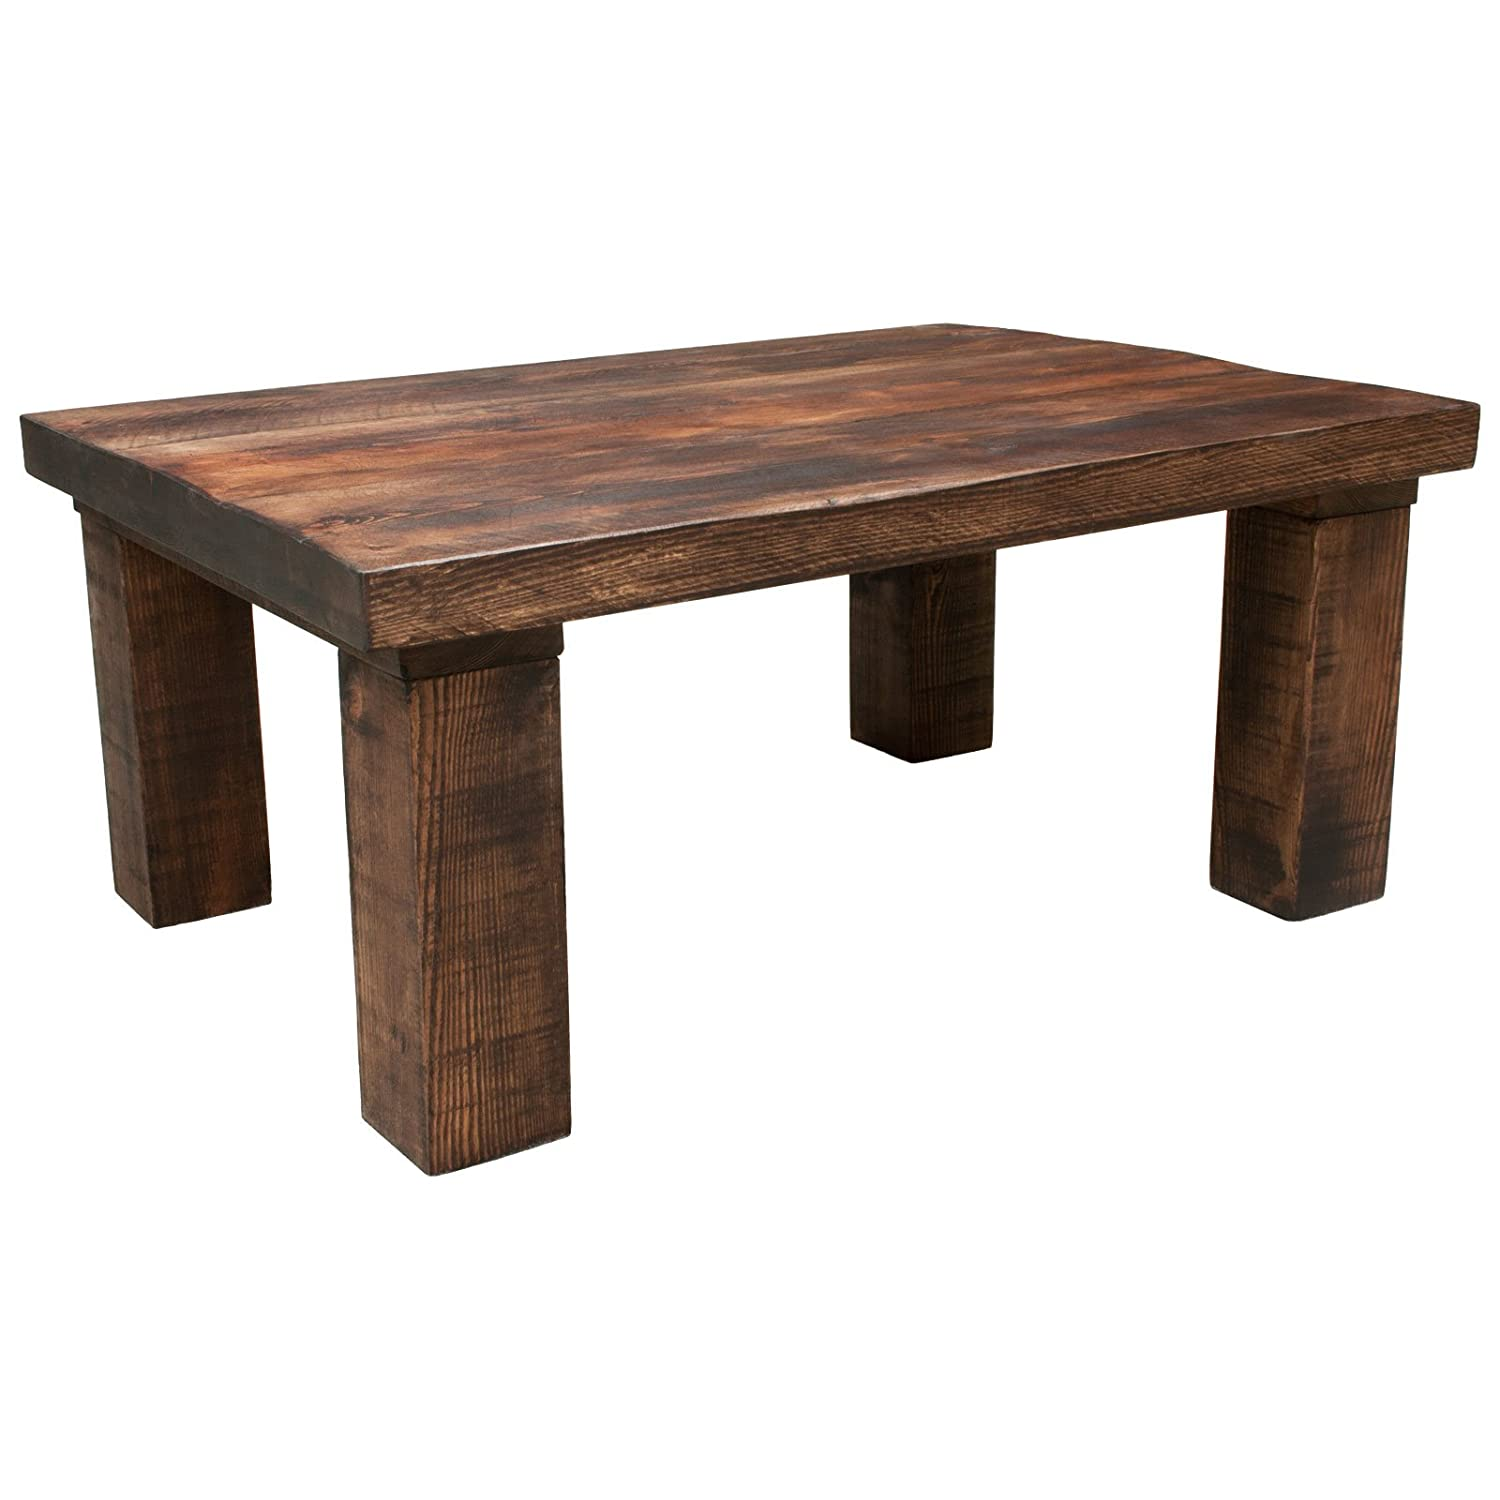 Funky Chunky Furniture Rustic Solid Wood 4 Leg 2in Top Coffee Table, Walnut, 100cm